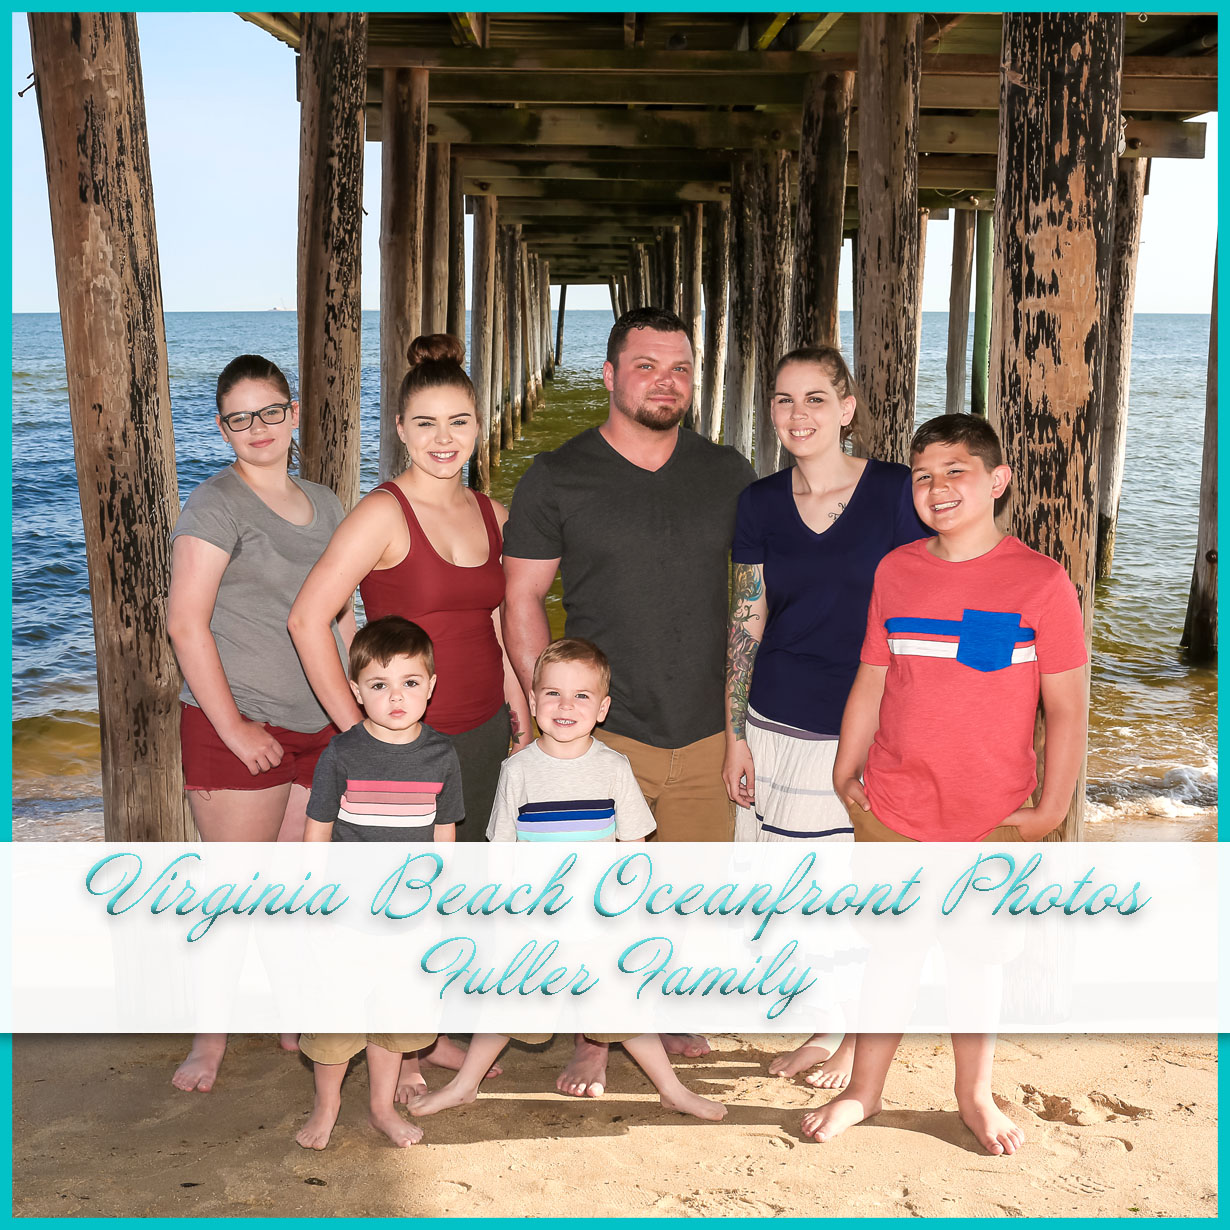 New family beach photos at Virginia Beach